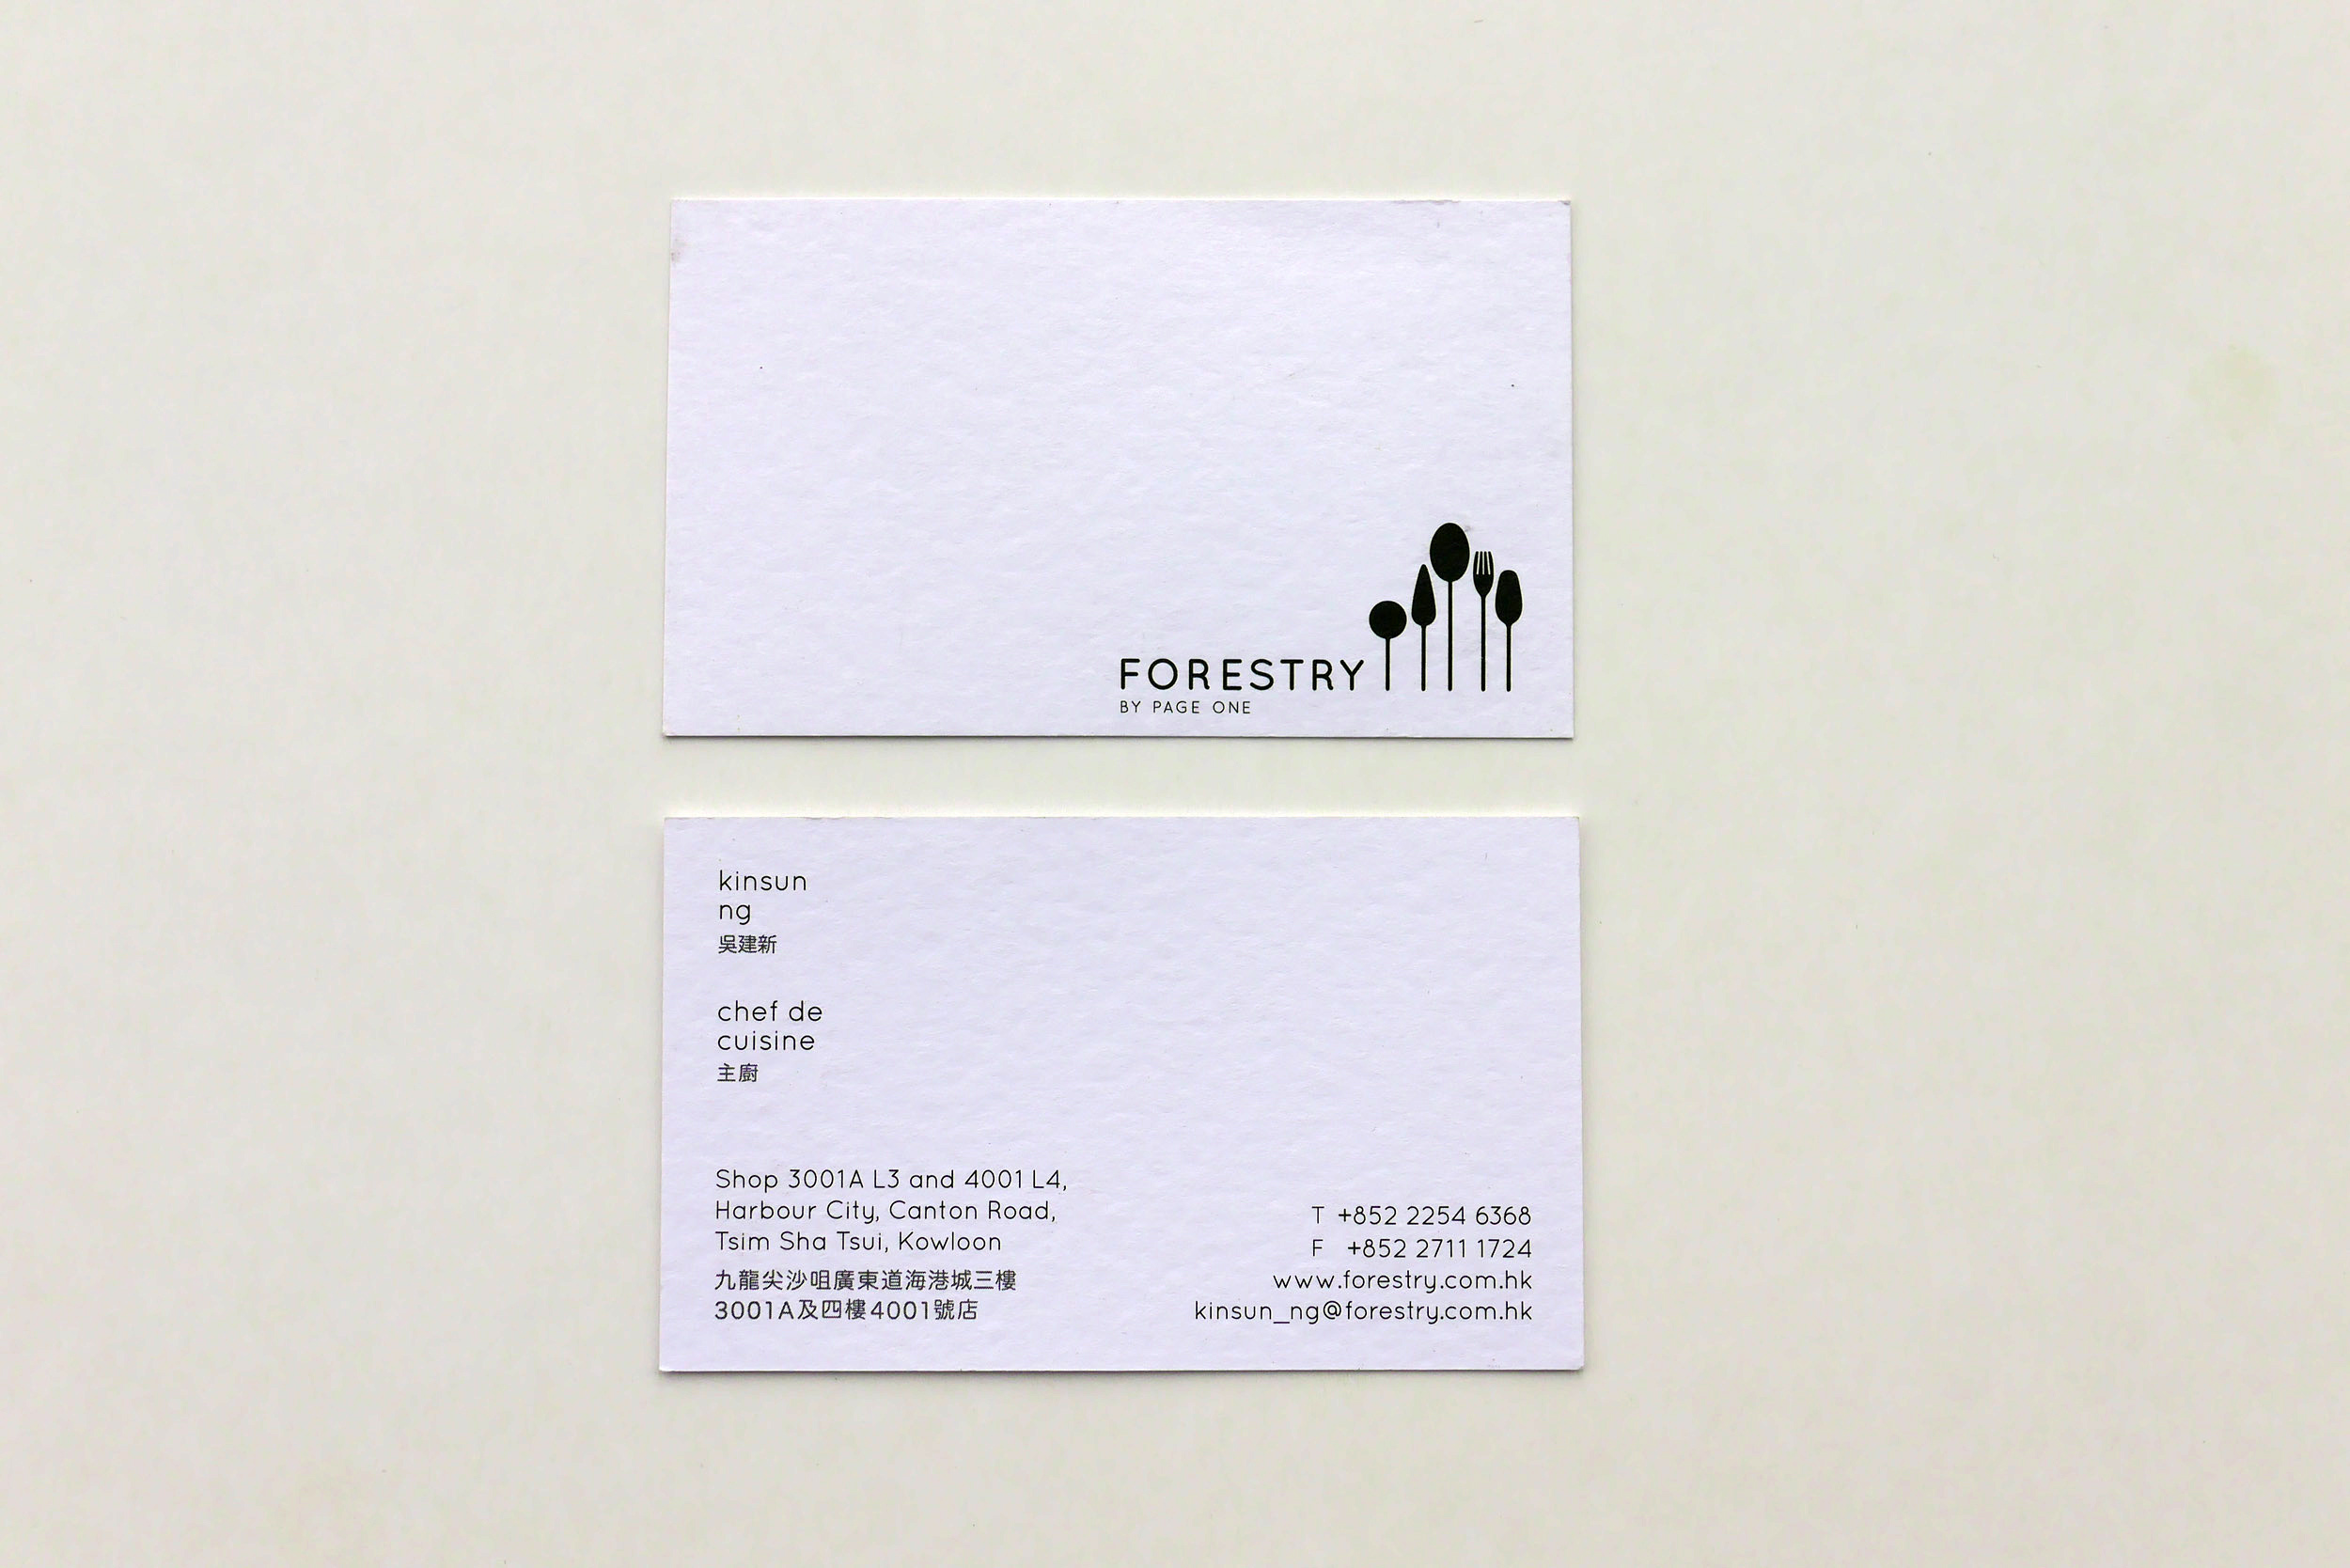 Forestry_BusinessCard.jpg